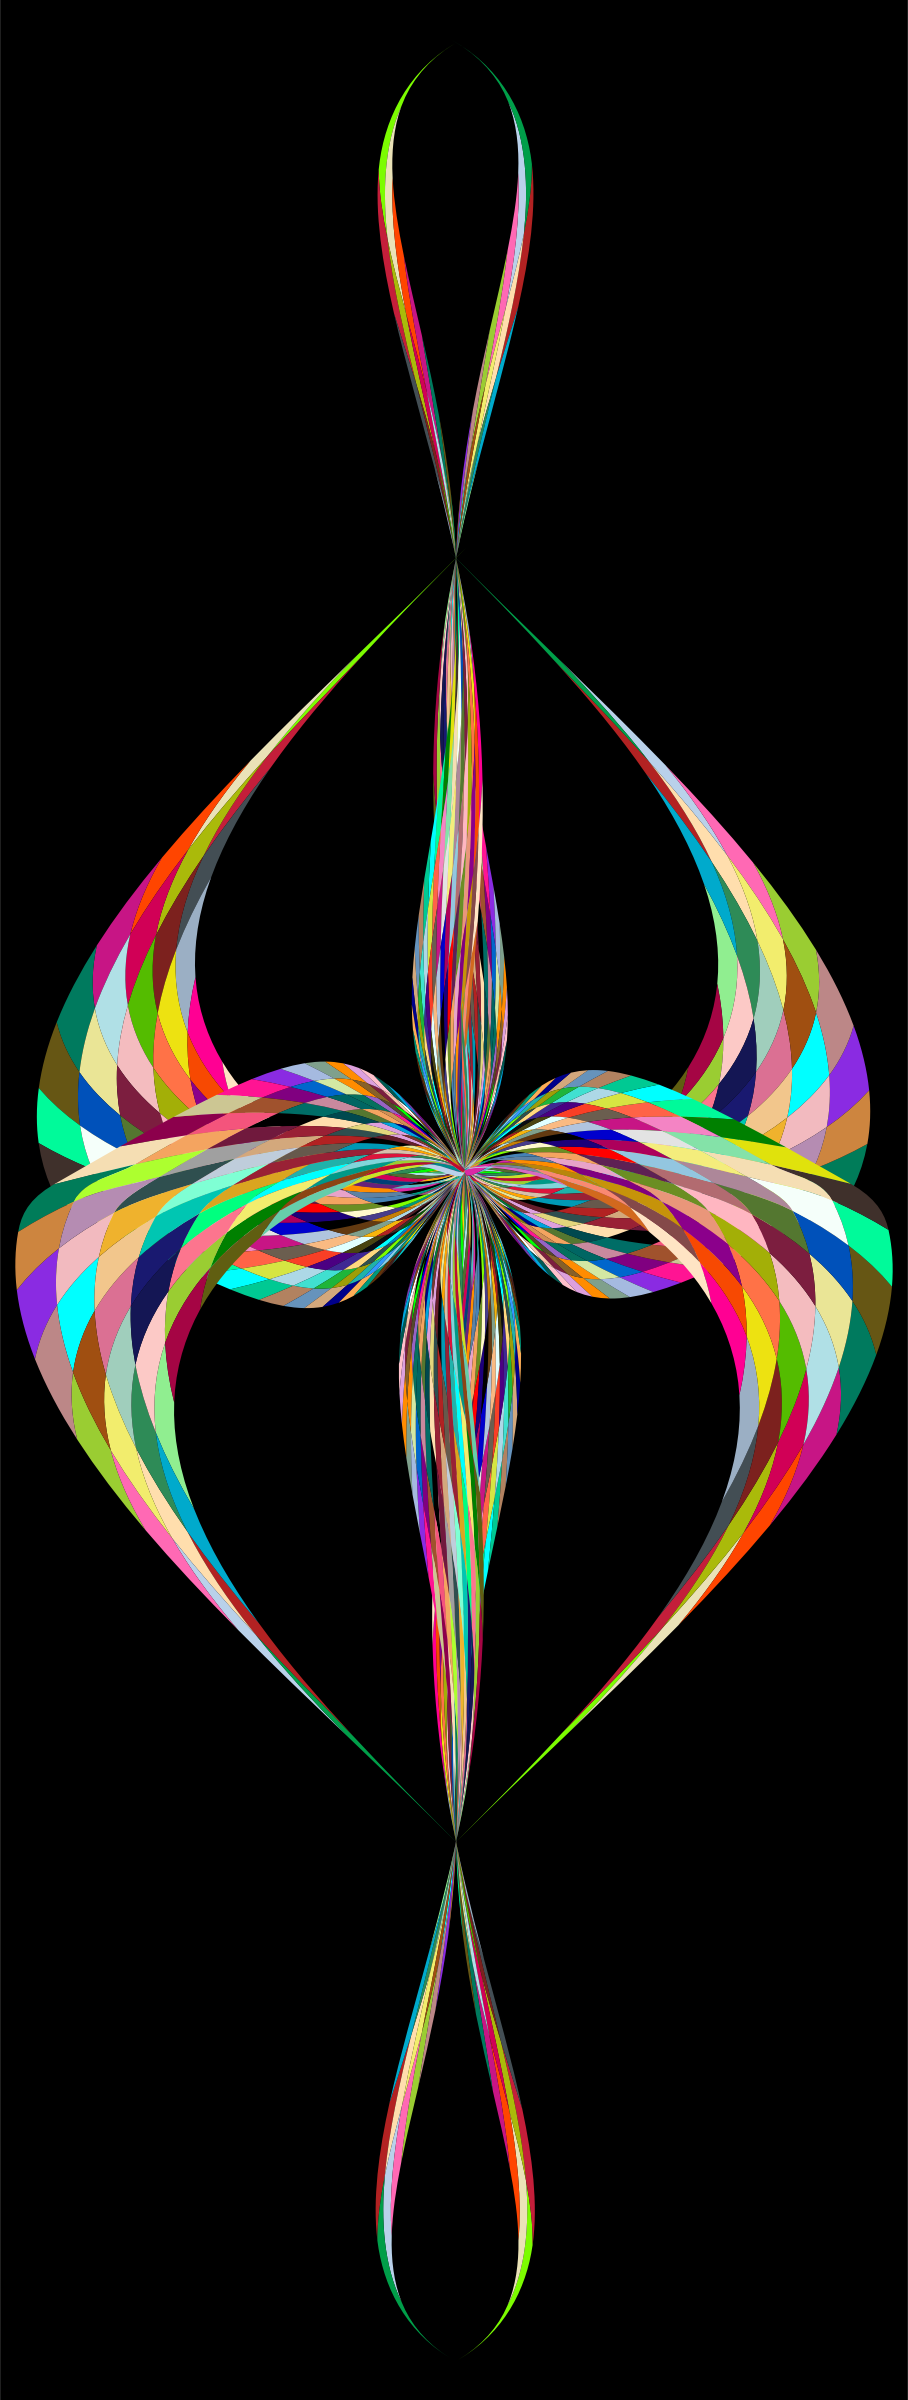 Colorful Stylized Cross 2 by GDJ